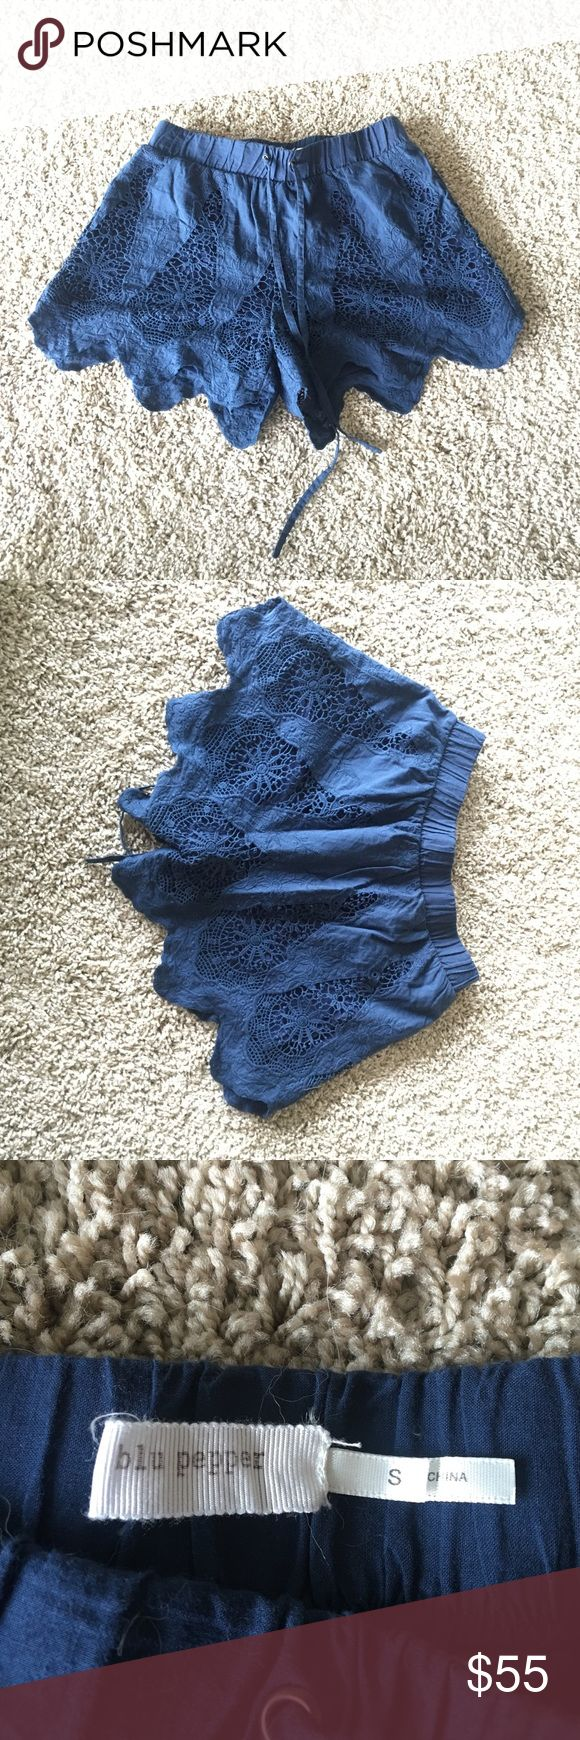 Navy Blue Shorts with Lace Detail I accept offered!! Perfect condition!! Navy blue shorts with tie string and beautiful lace detail. Blu Pepper Shorts